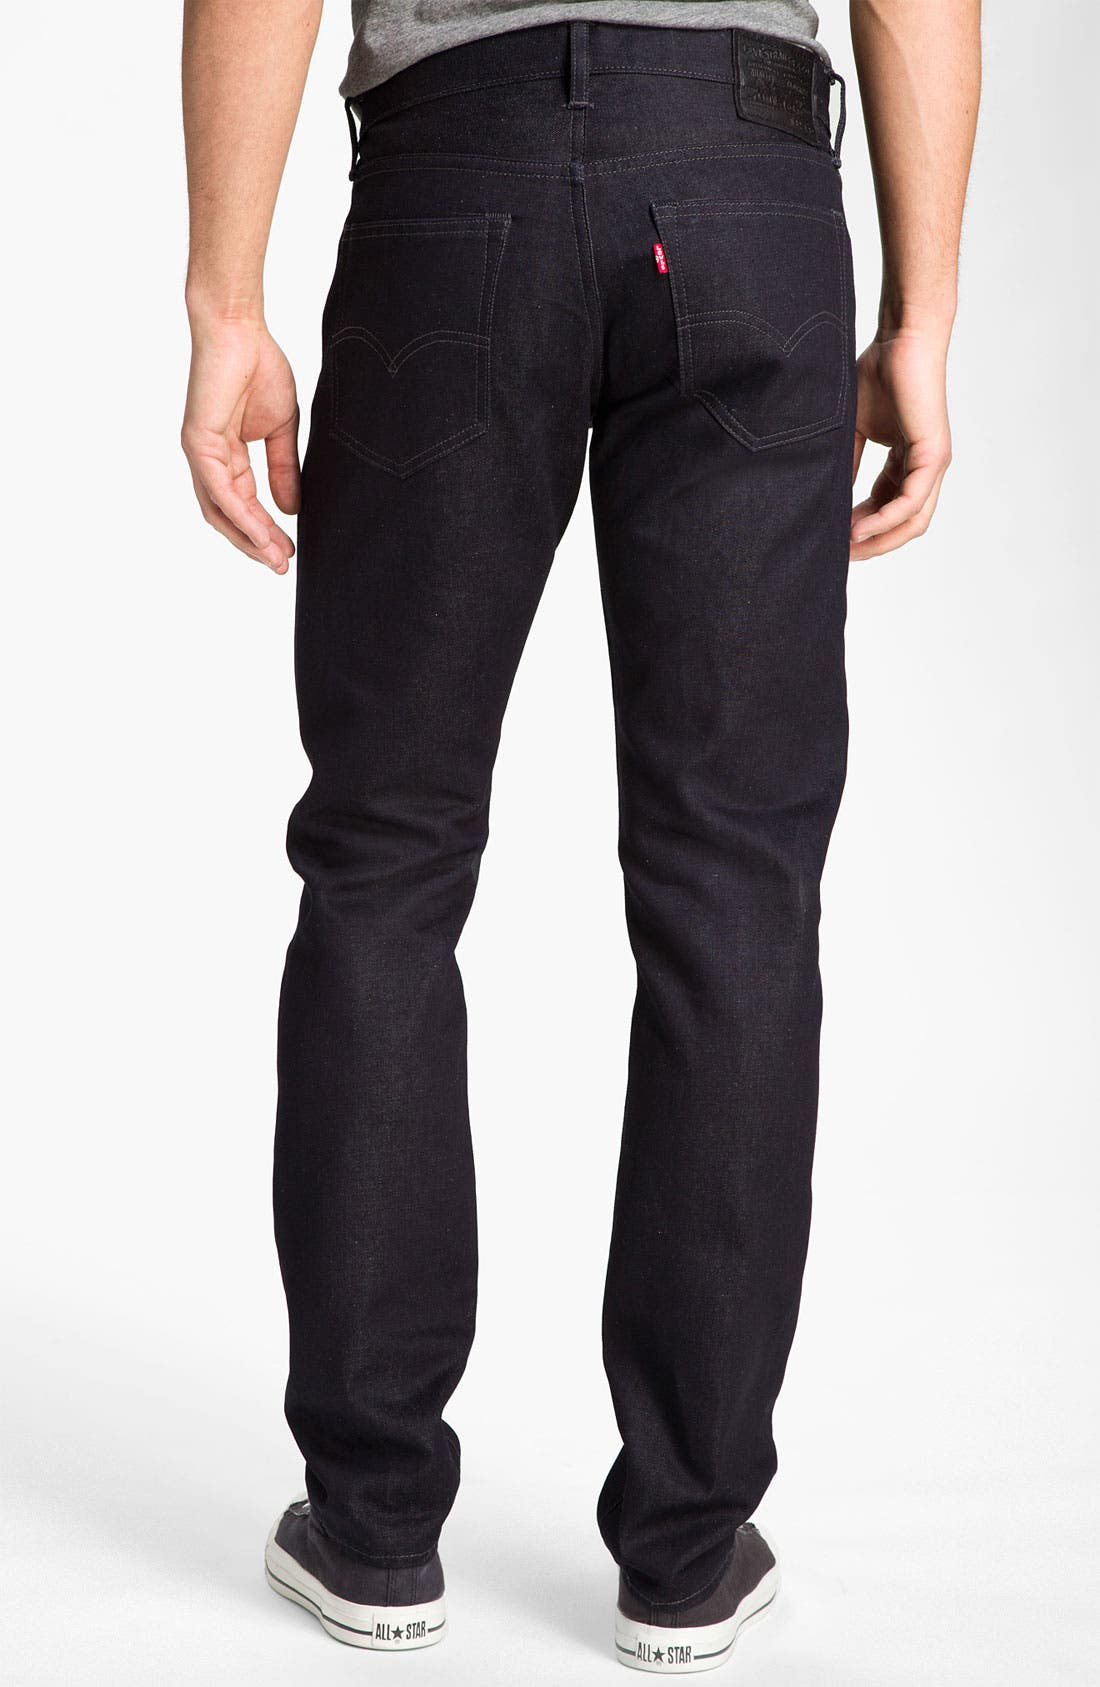 Alternate Image 1 Selected - Levi's® 'Matchstick' Slim Straight Leg Jeans (Mayfield)